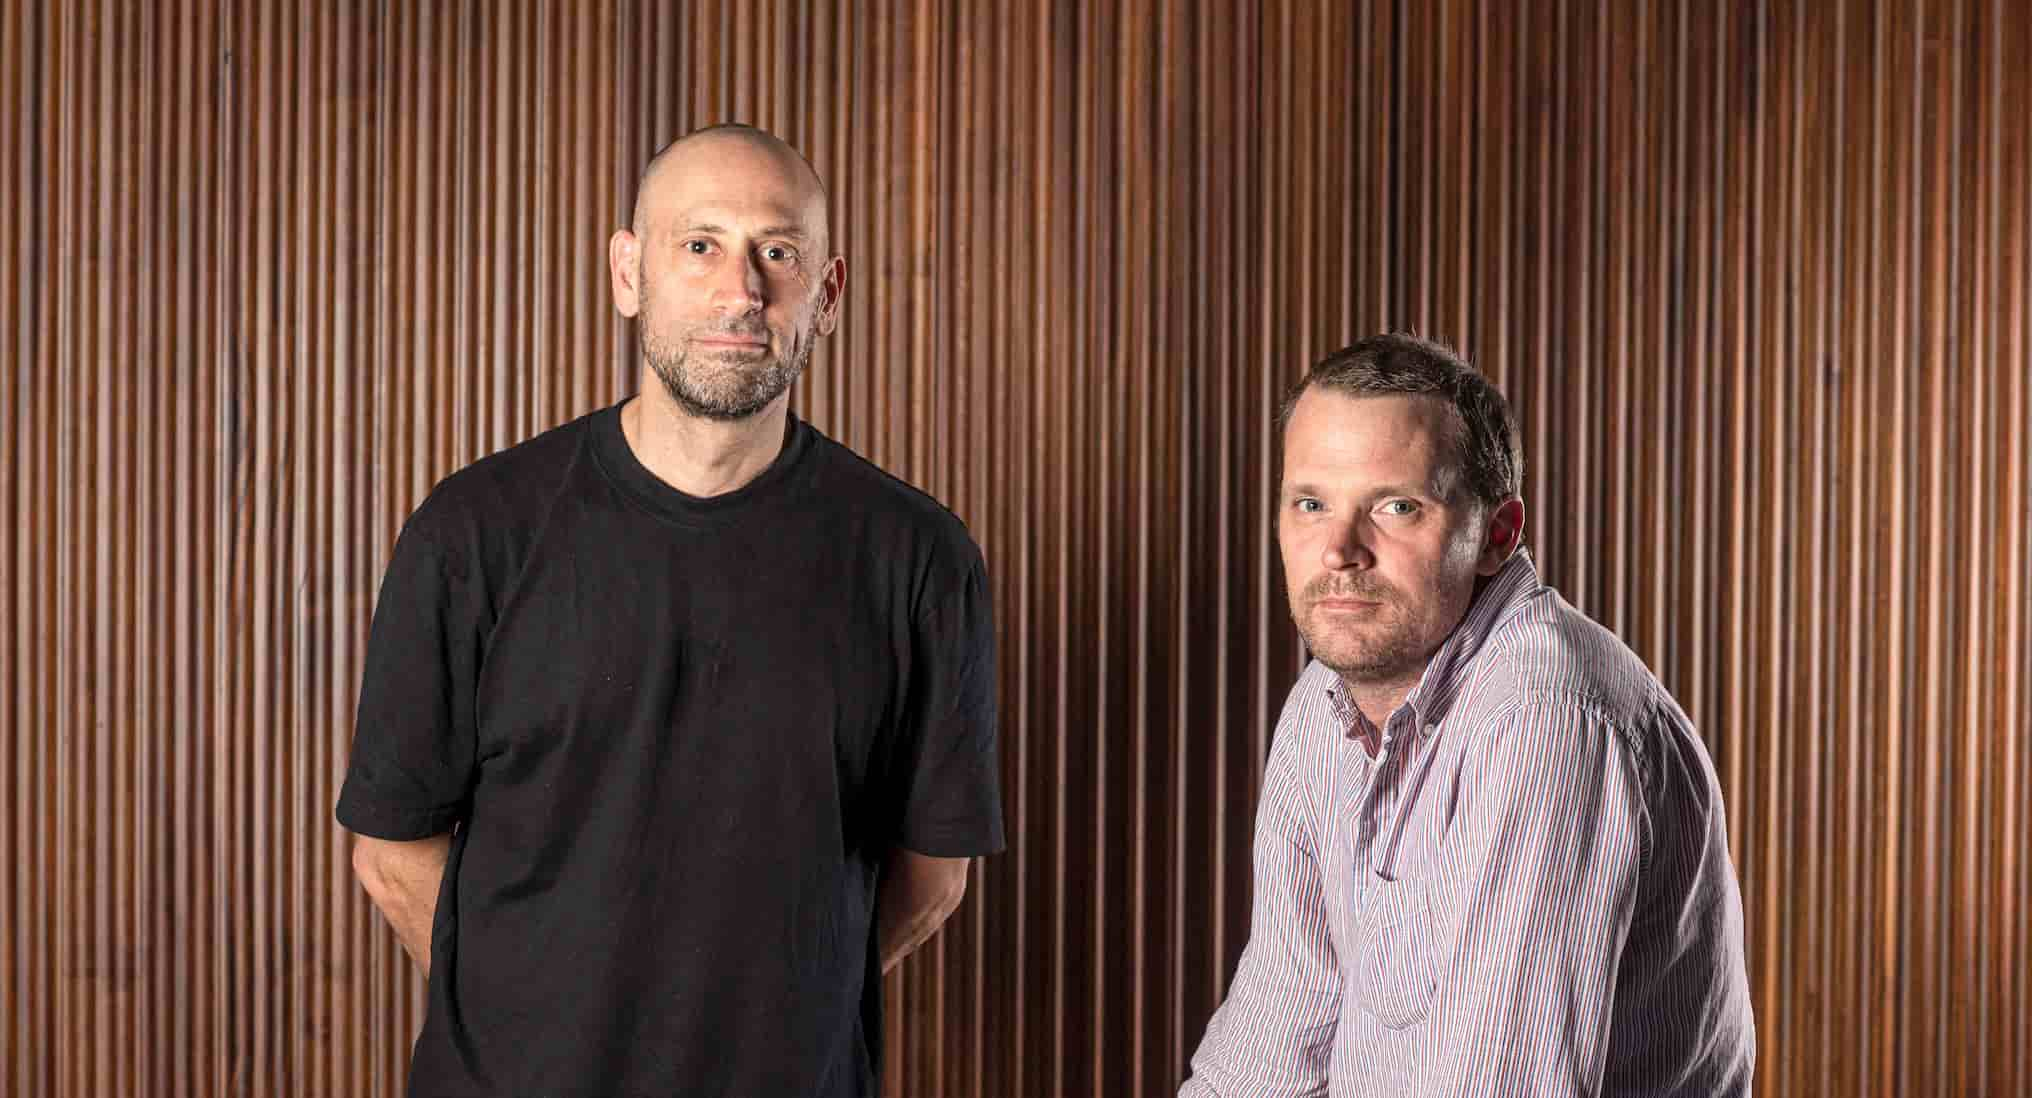 Artificial Artists Co Founders Ben Cyzer and Tim Phillips